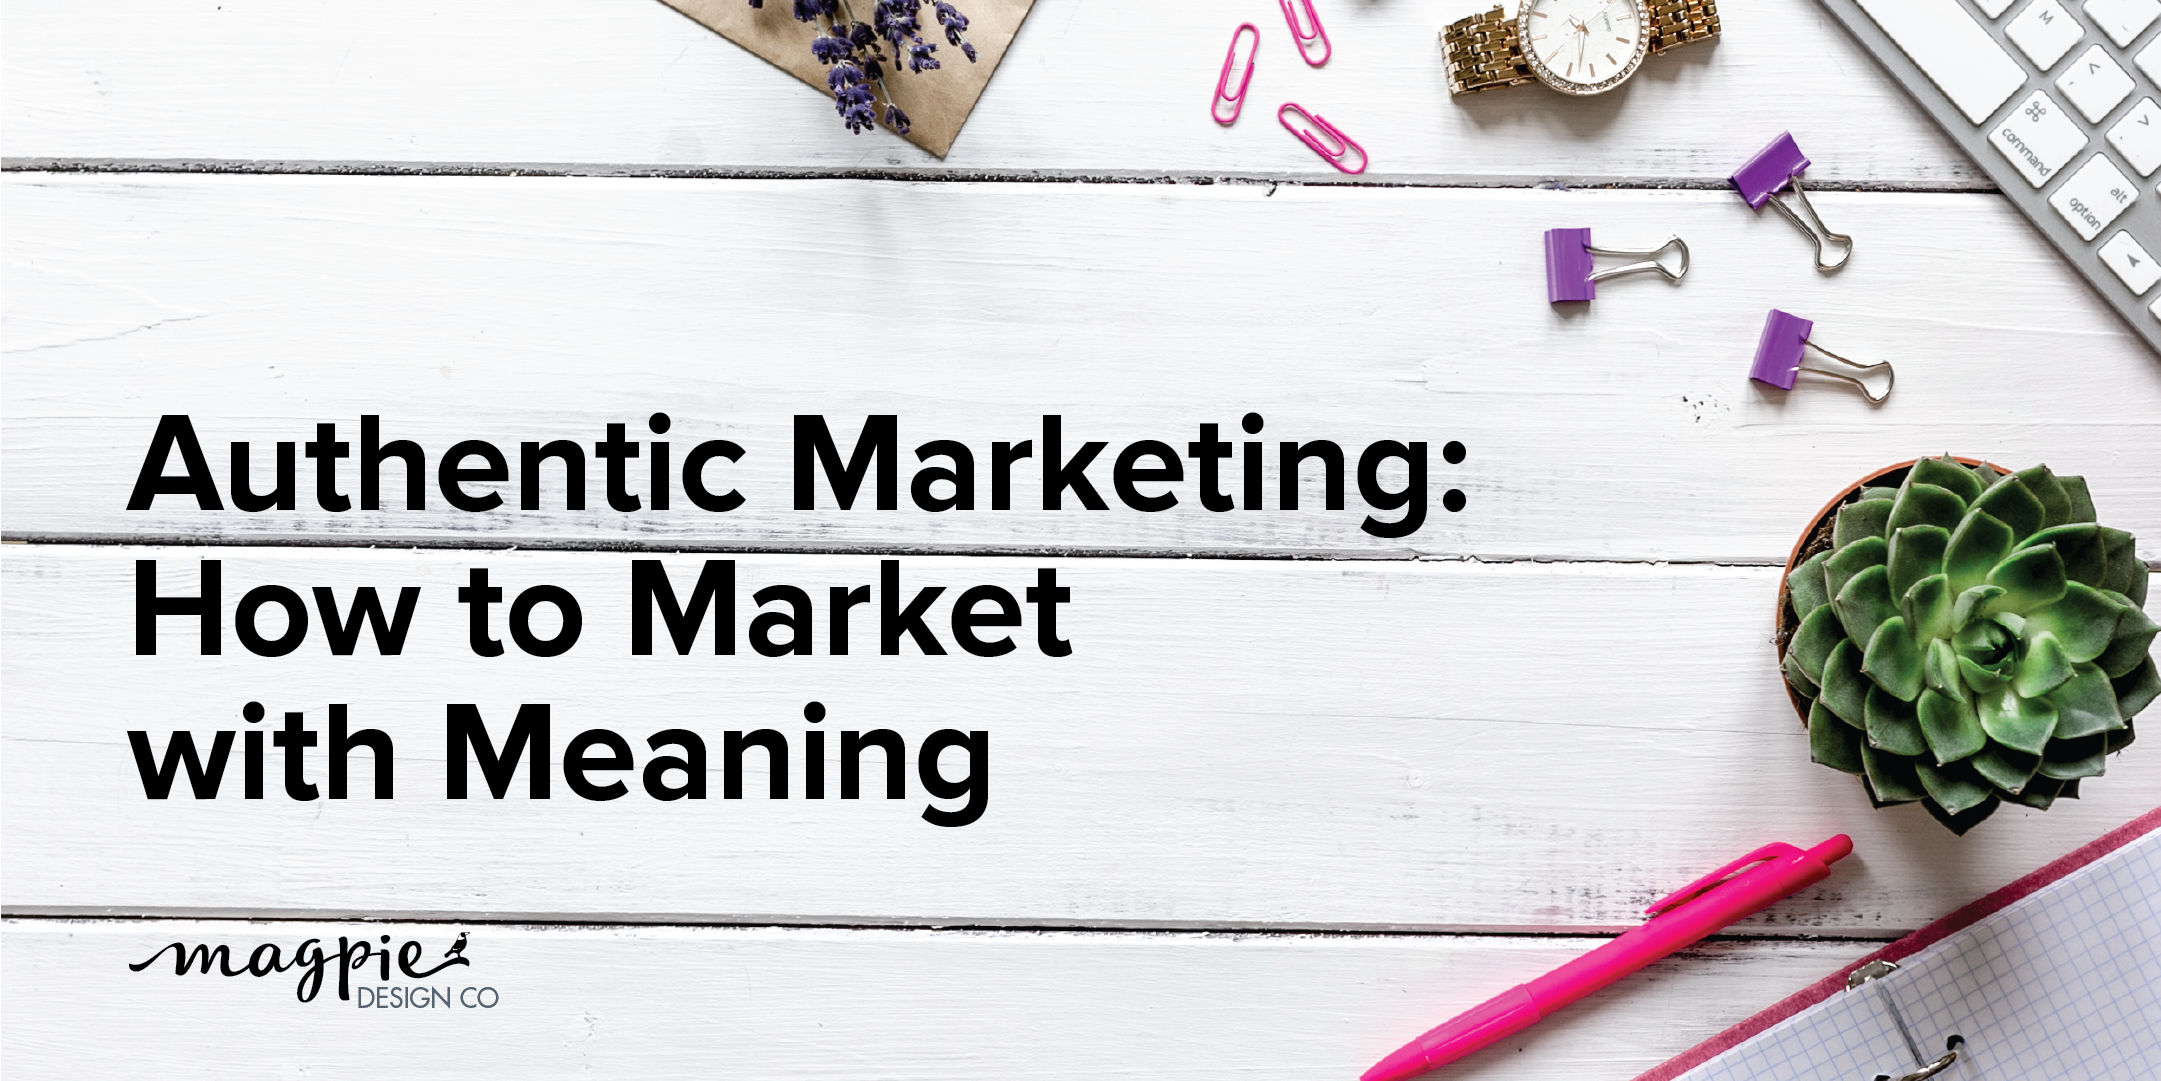 Authentic Marketing: How to Market with Meaning